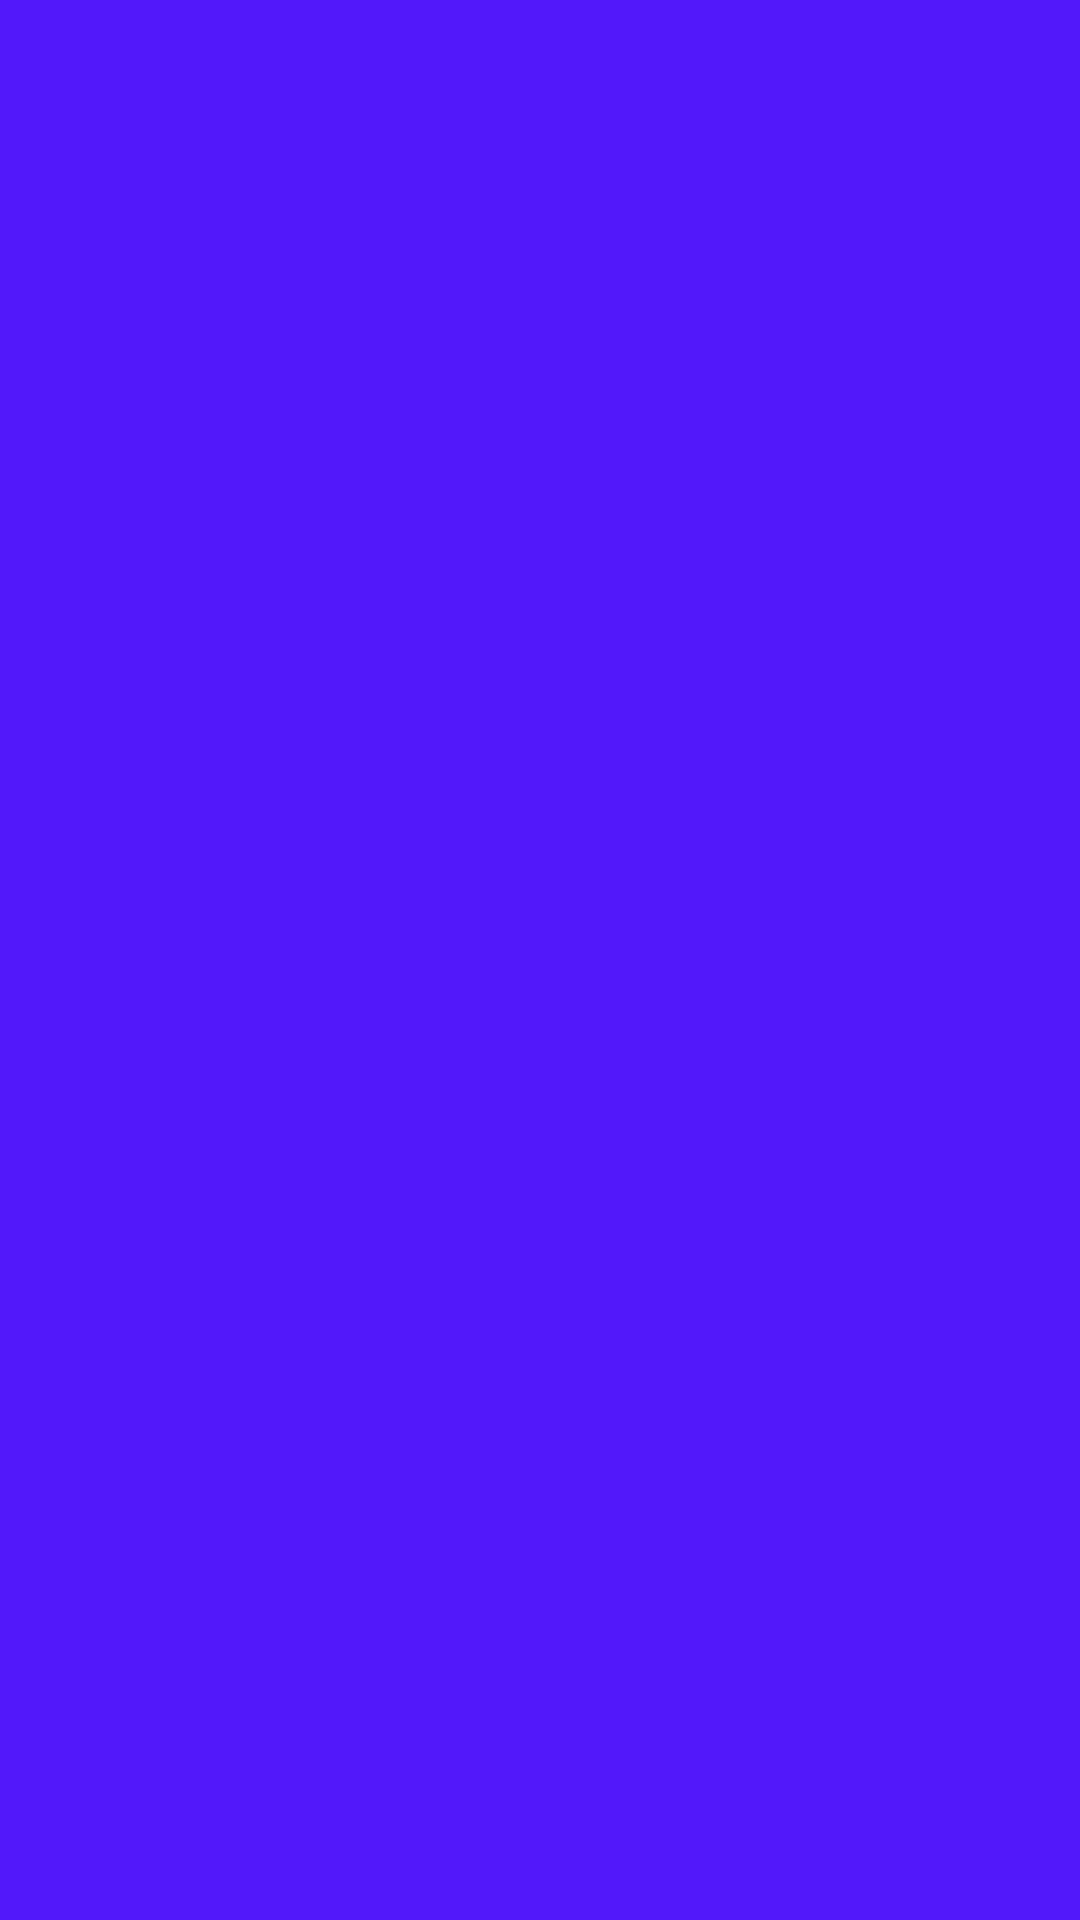 1080x1920 Han Purple Solid Color Background